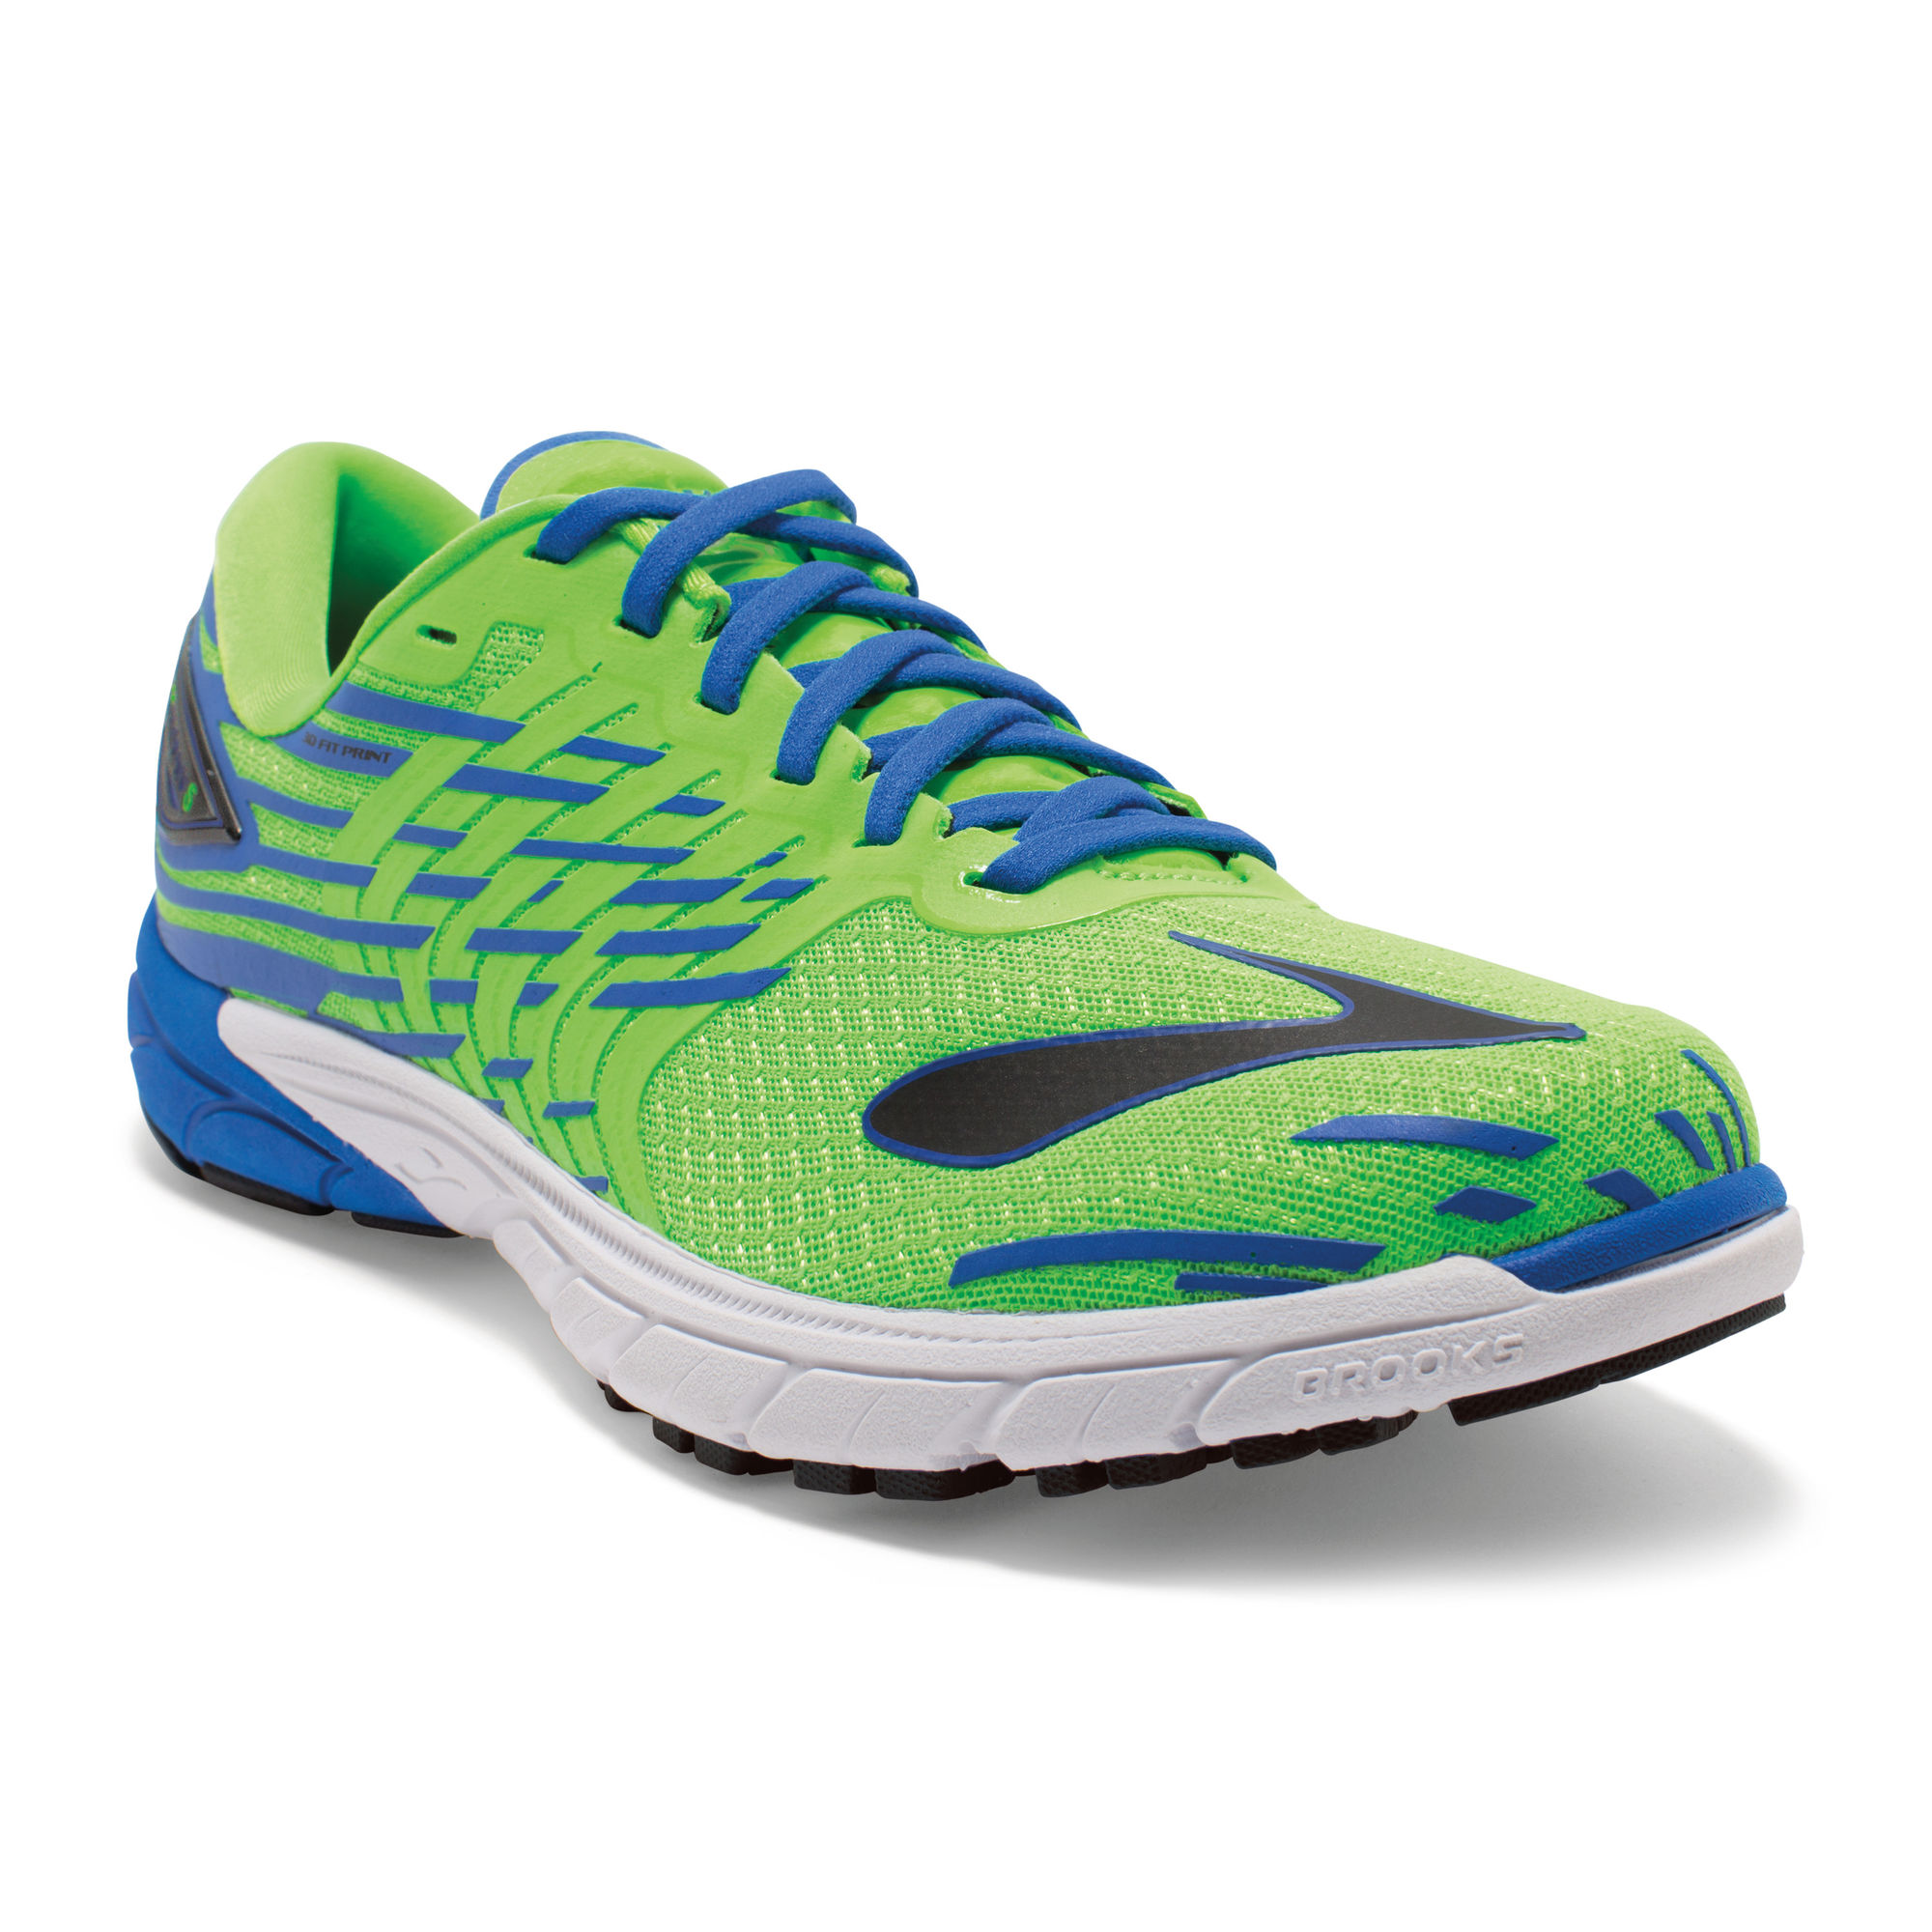 Brooks Pure Cadence 5 in Green Gecko